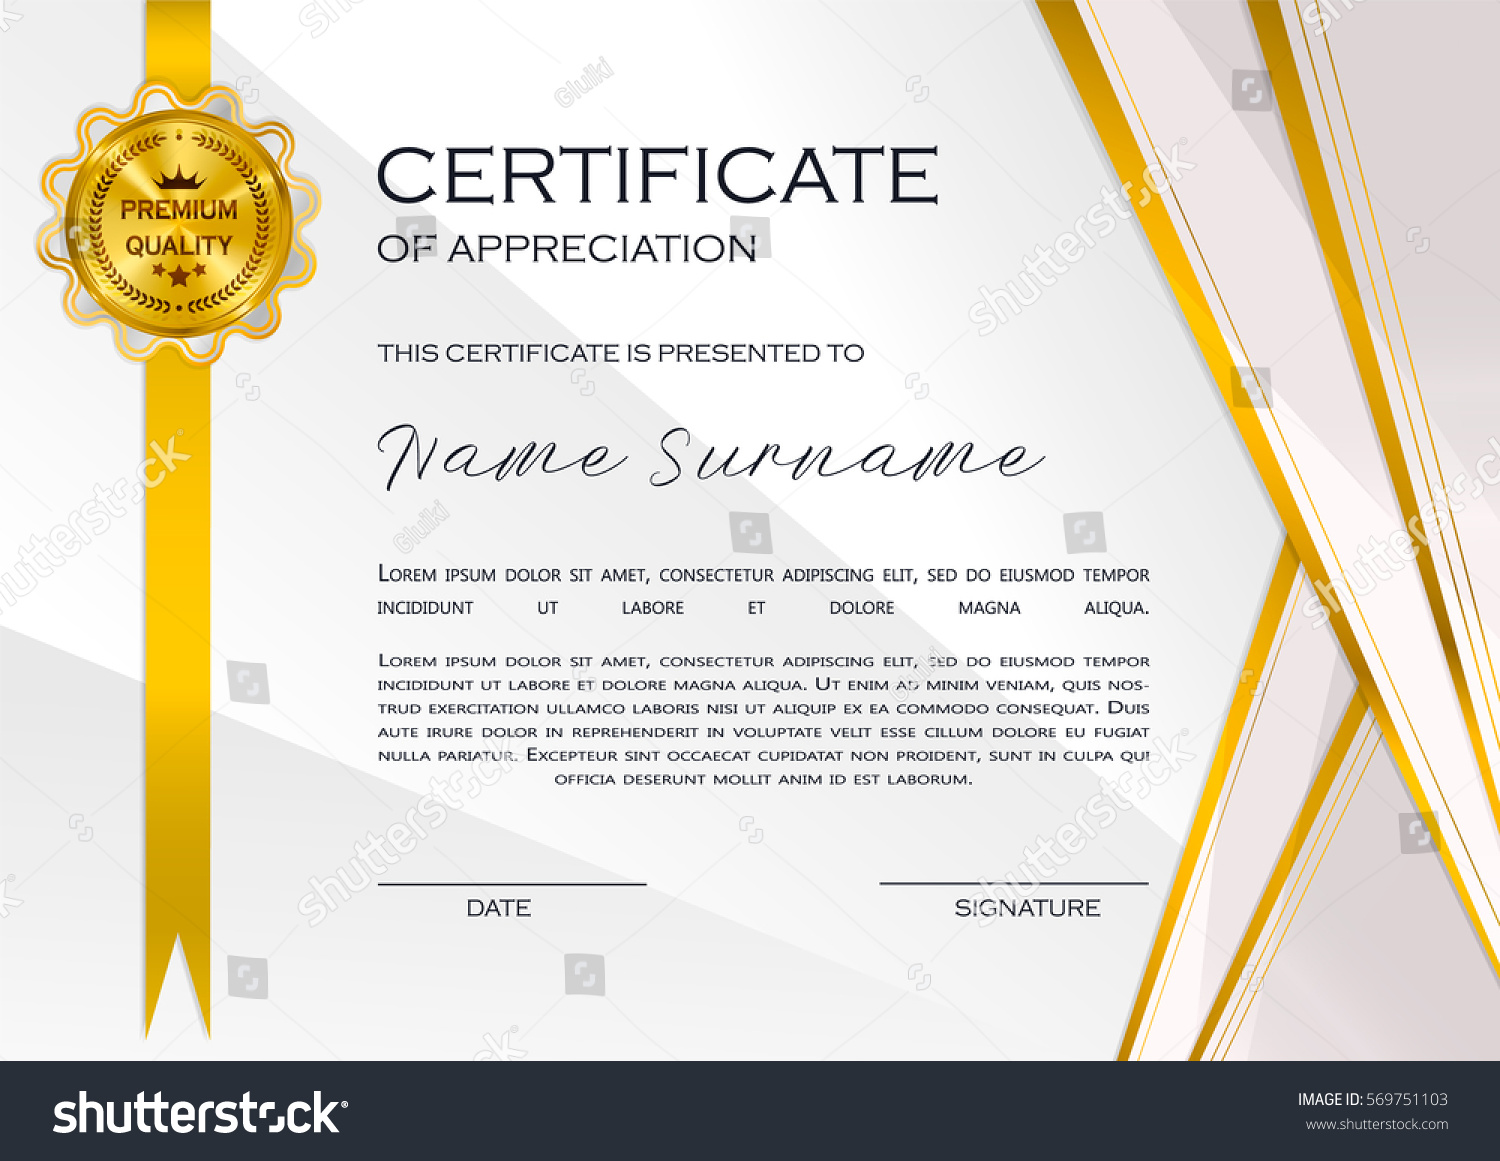 Qualification certificate appreciation design elegant luxury stock qualification certificate of appreciation design elegant luxury and modern pattern best quality award template alramifo Image collections